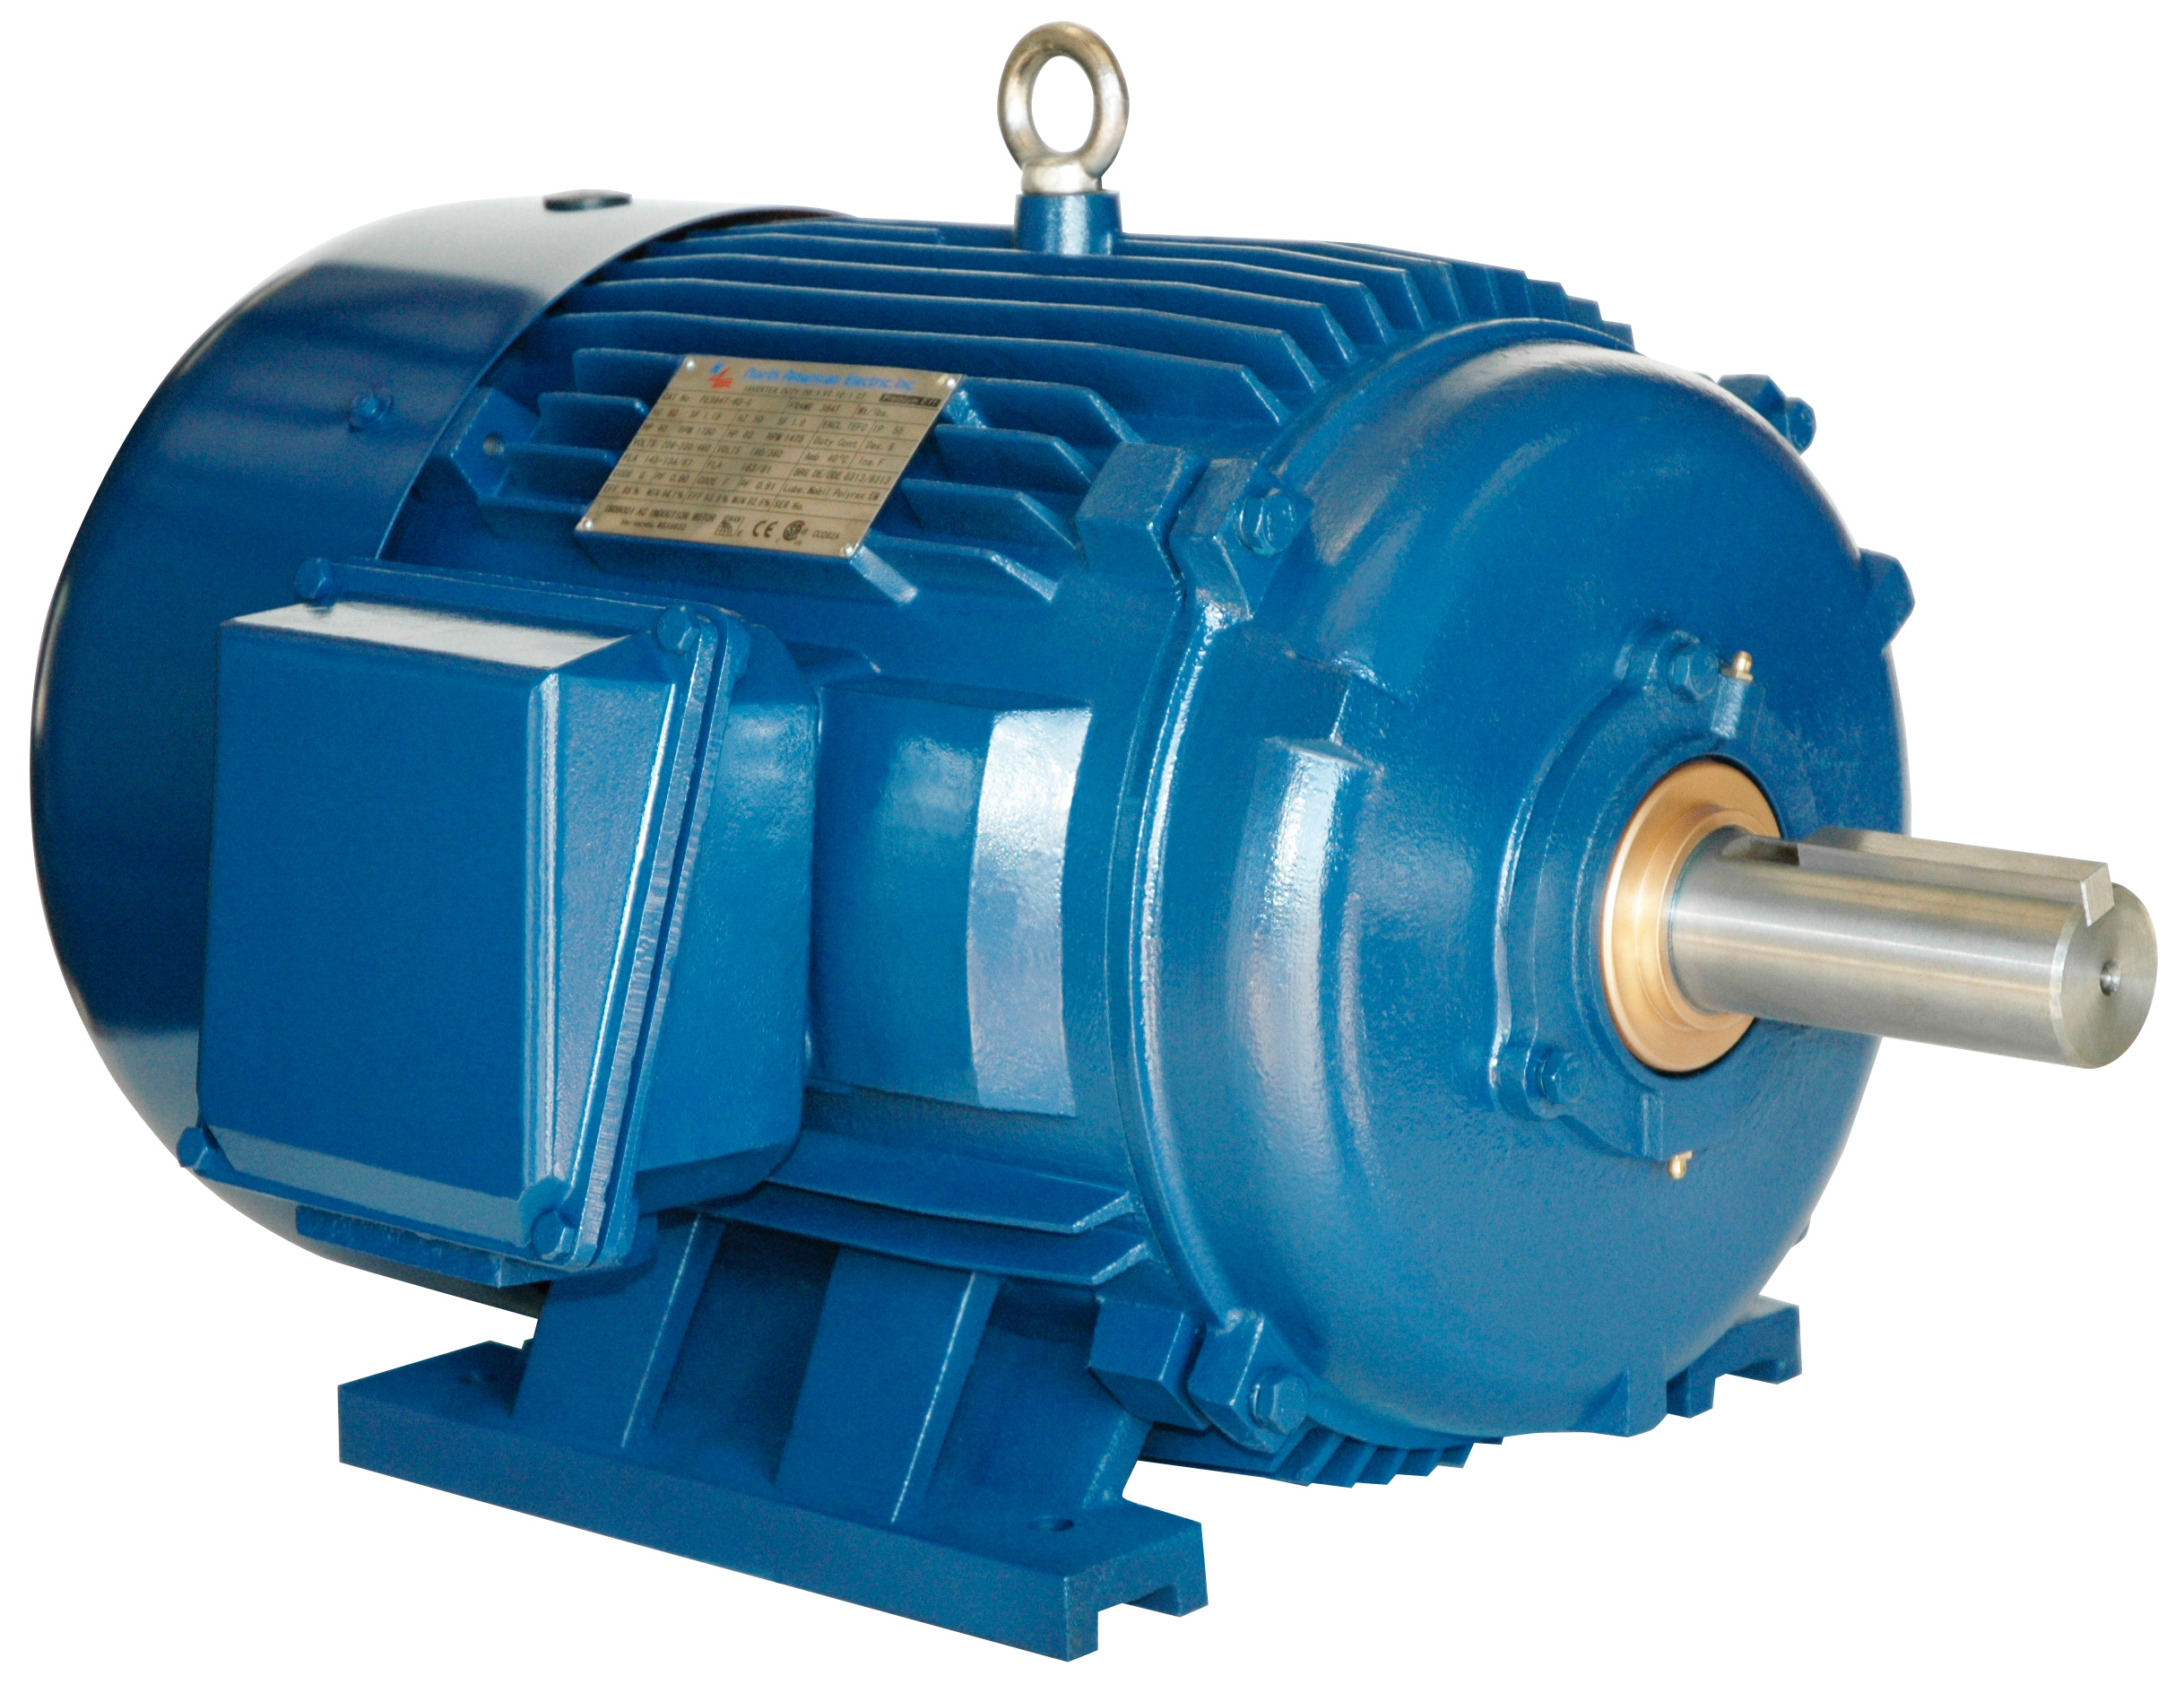 5 Hp Electric Motor >> 5 Hp 254t Electric Motor 900 Rpm 3 Phase 208 230 460 Totally Enclosed